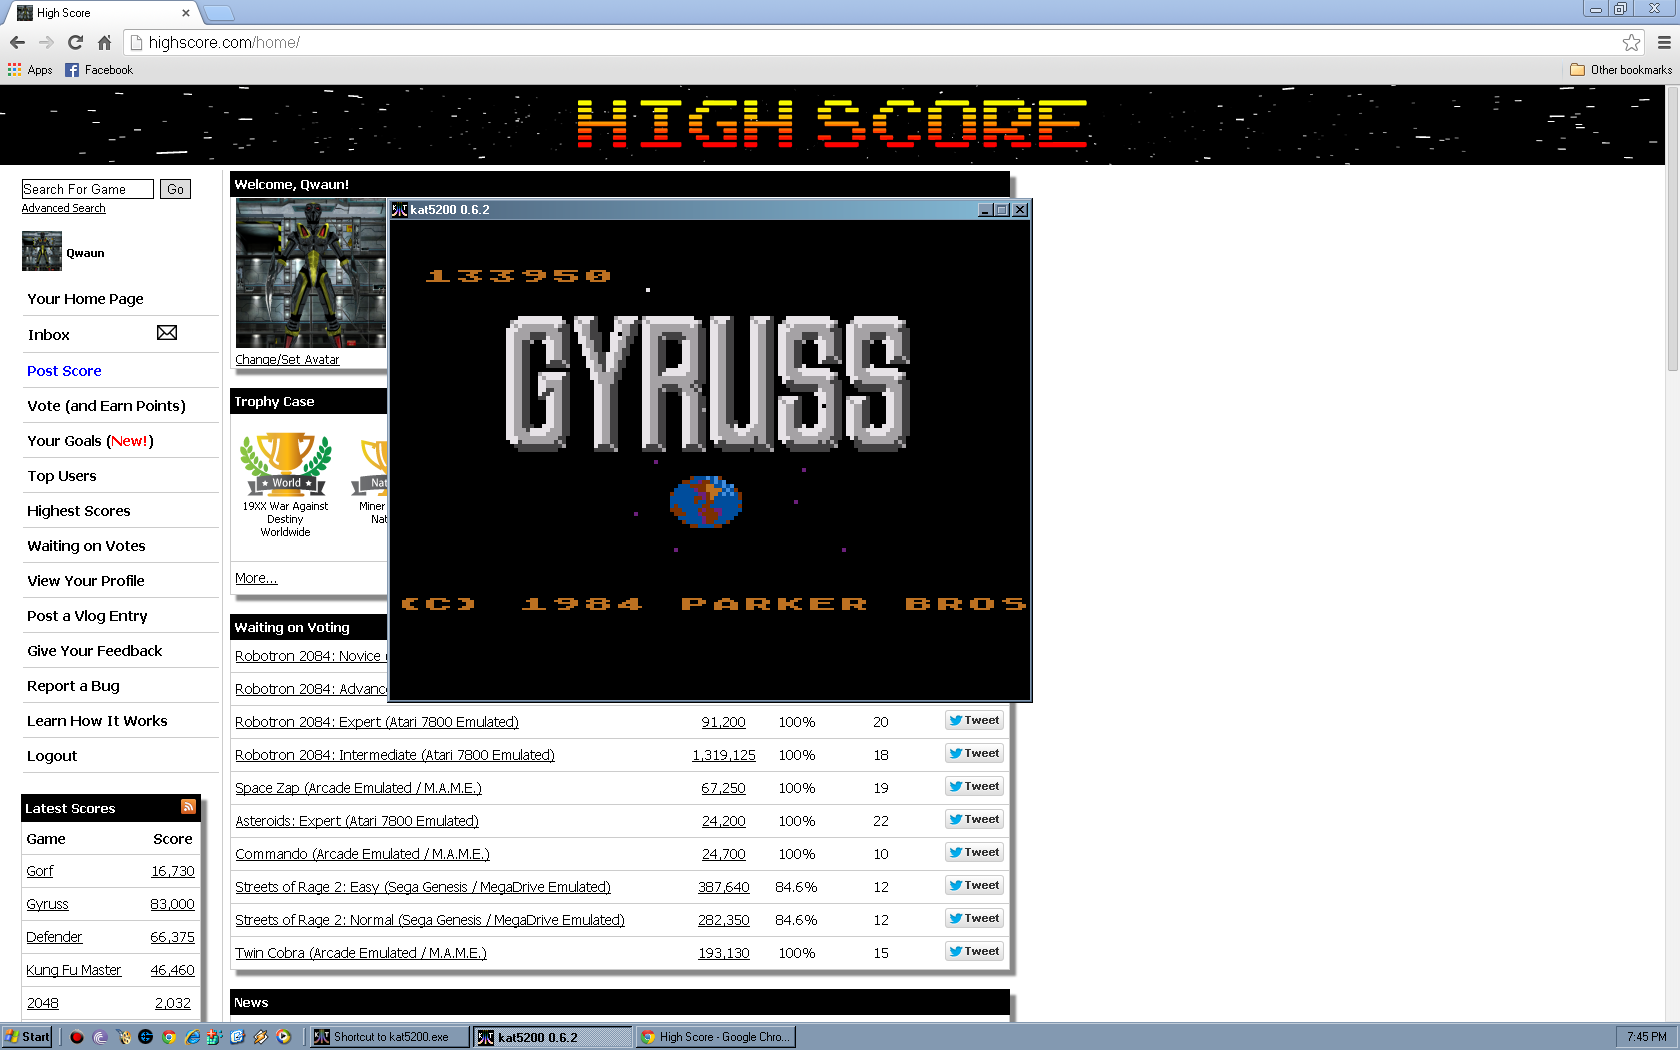 Gyruss 133,950 points